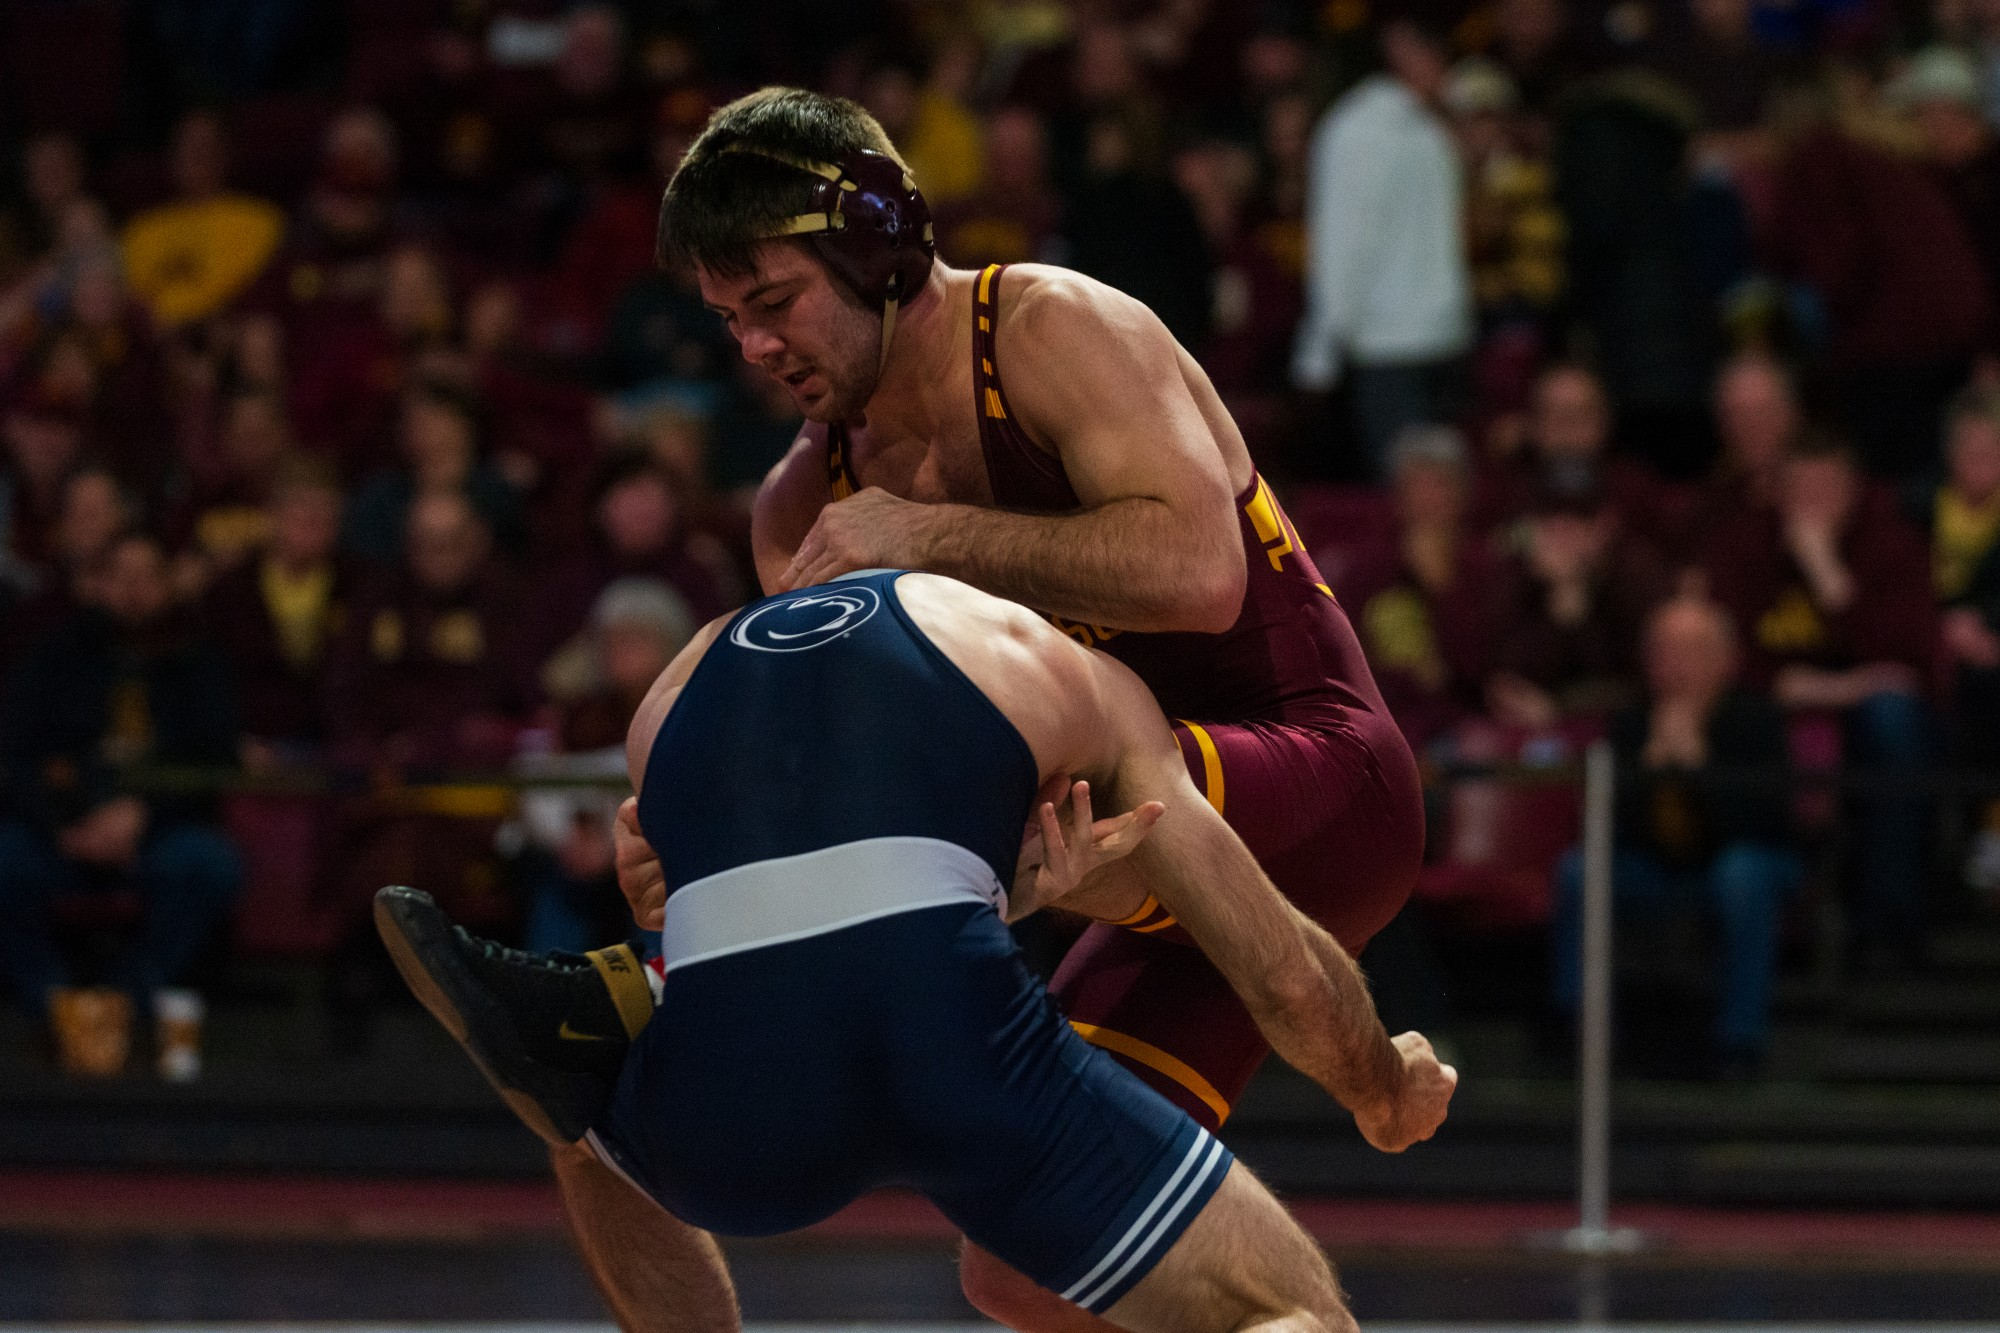 Gophers Brayton Lee fights a takedown at Maturi Pavilion on Sunday, Feb. 9, 2020. The Gophers lost to Penn State 31-10.